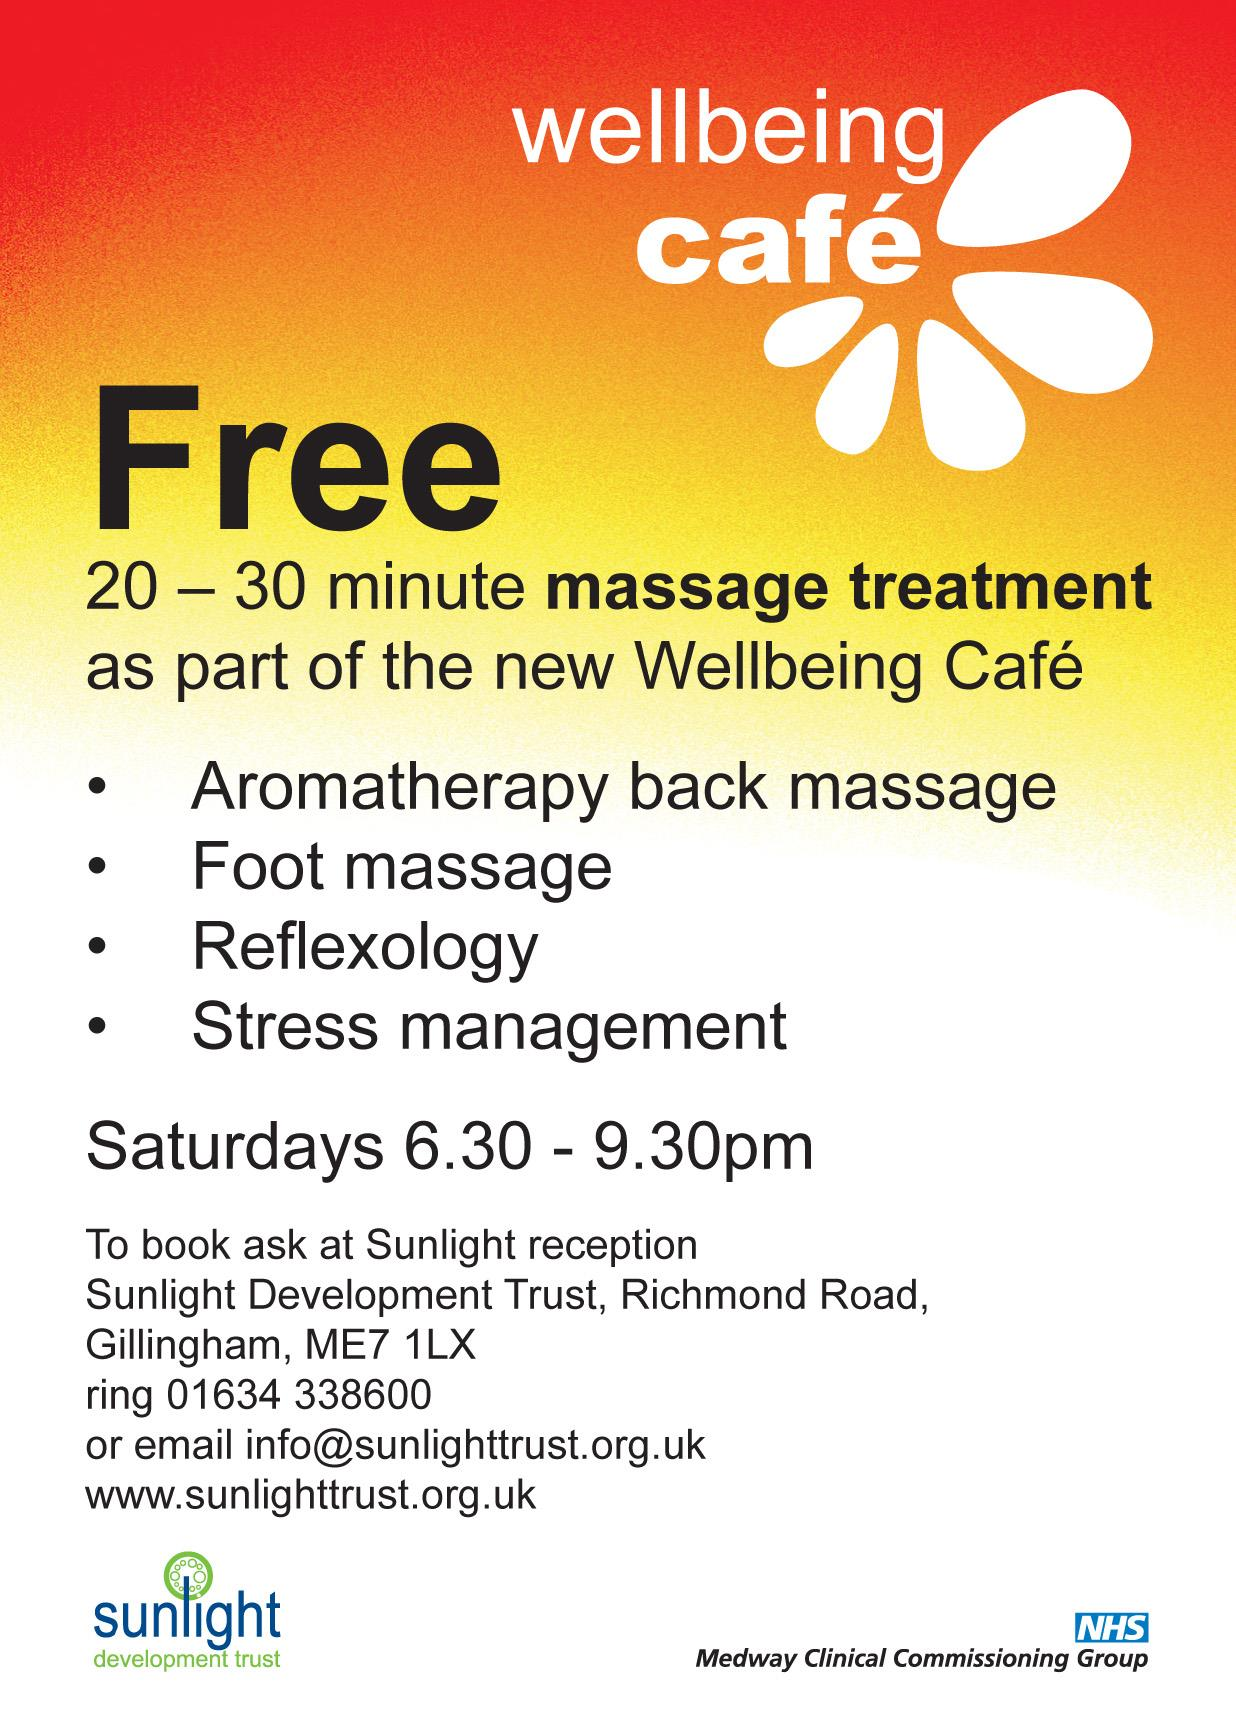 Free massage treatment